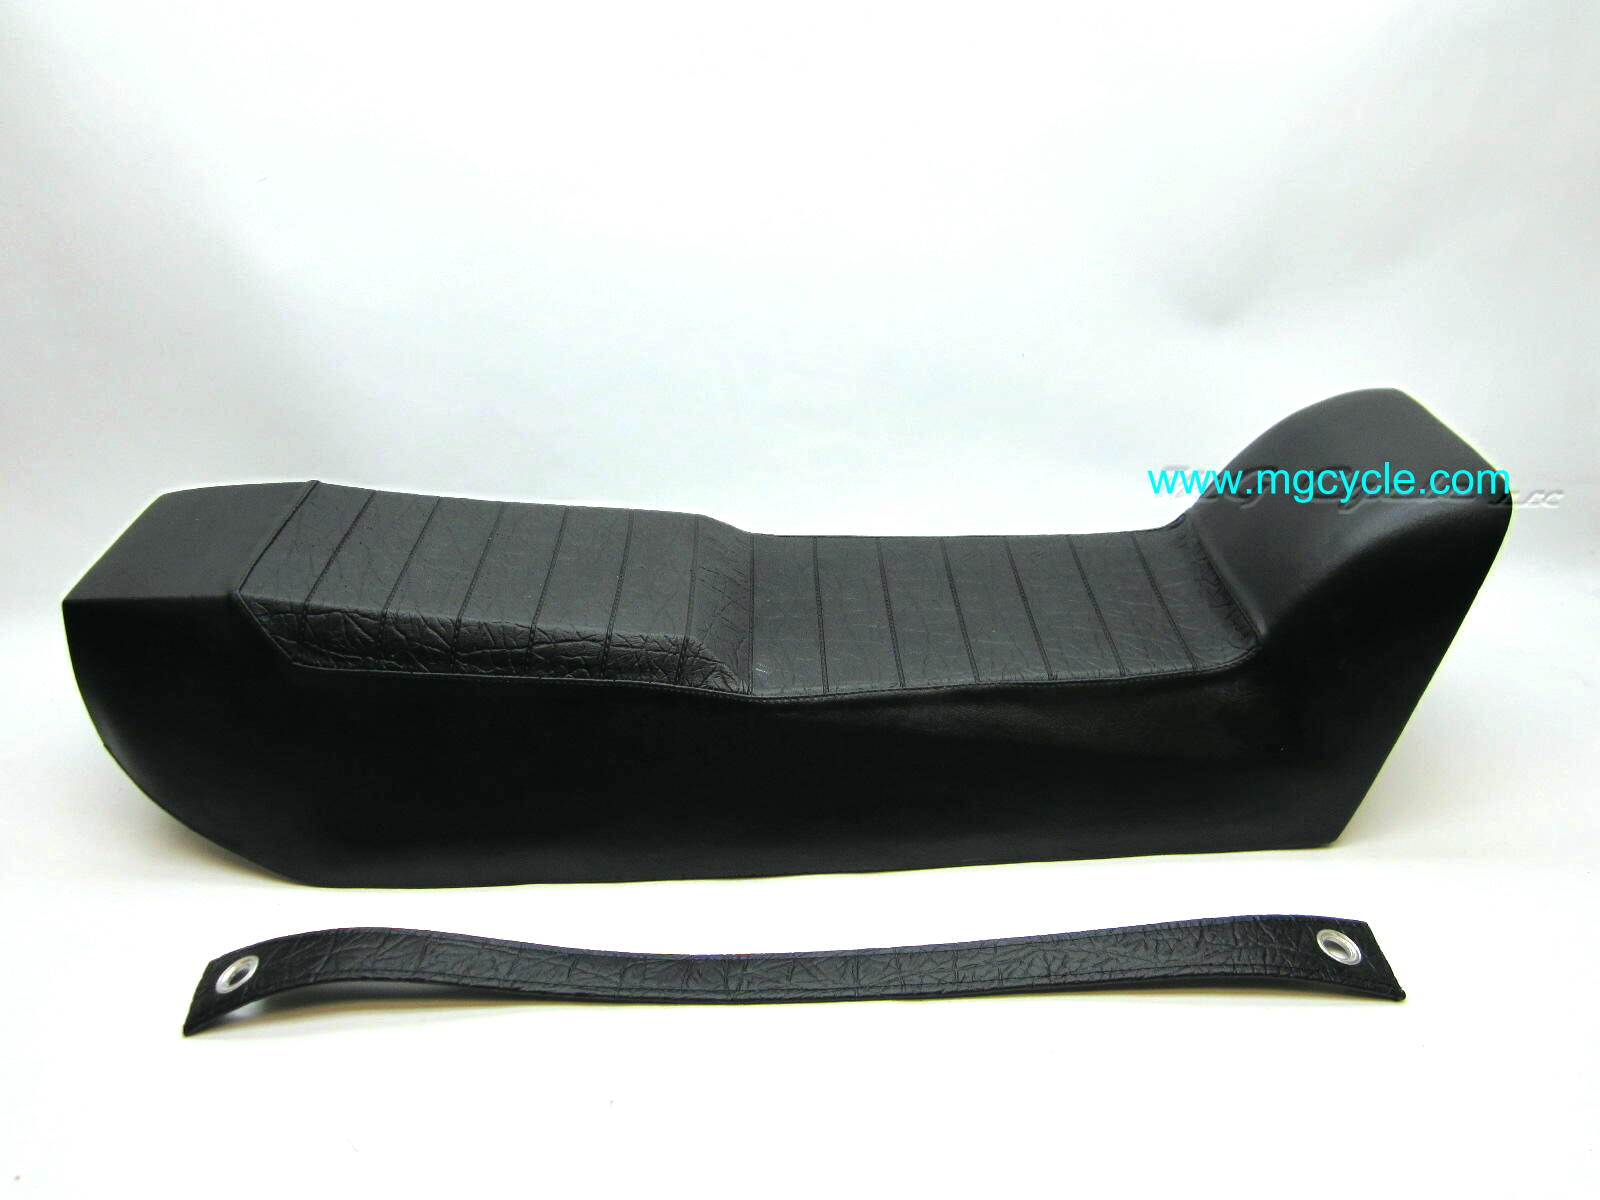 Molded rubber seat for 850 LeMans